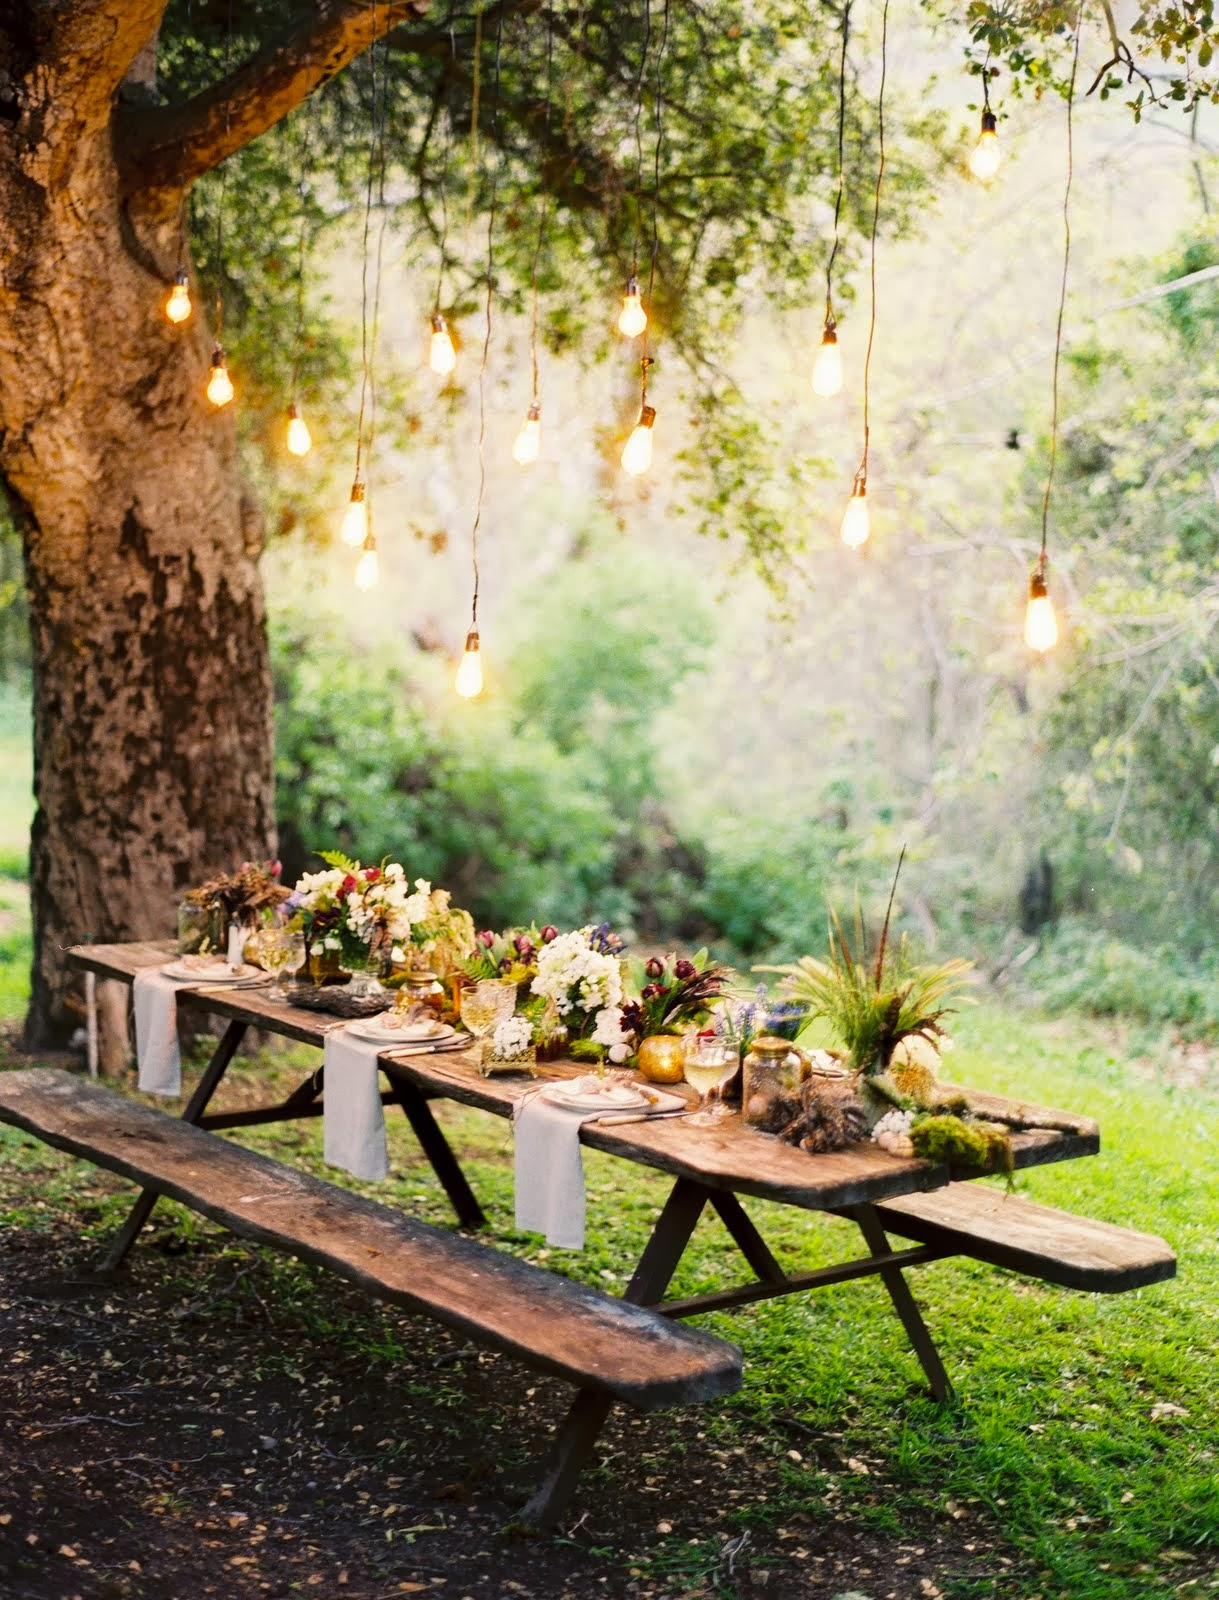 Picnic Table Under Tree